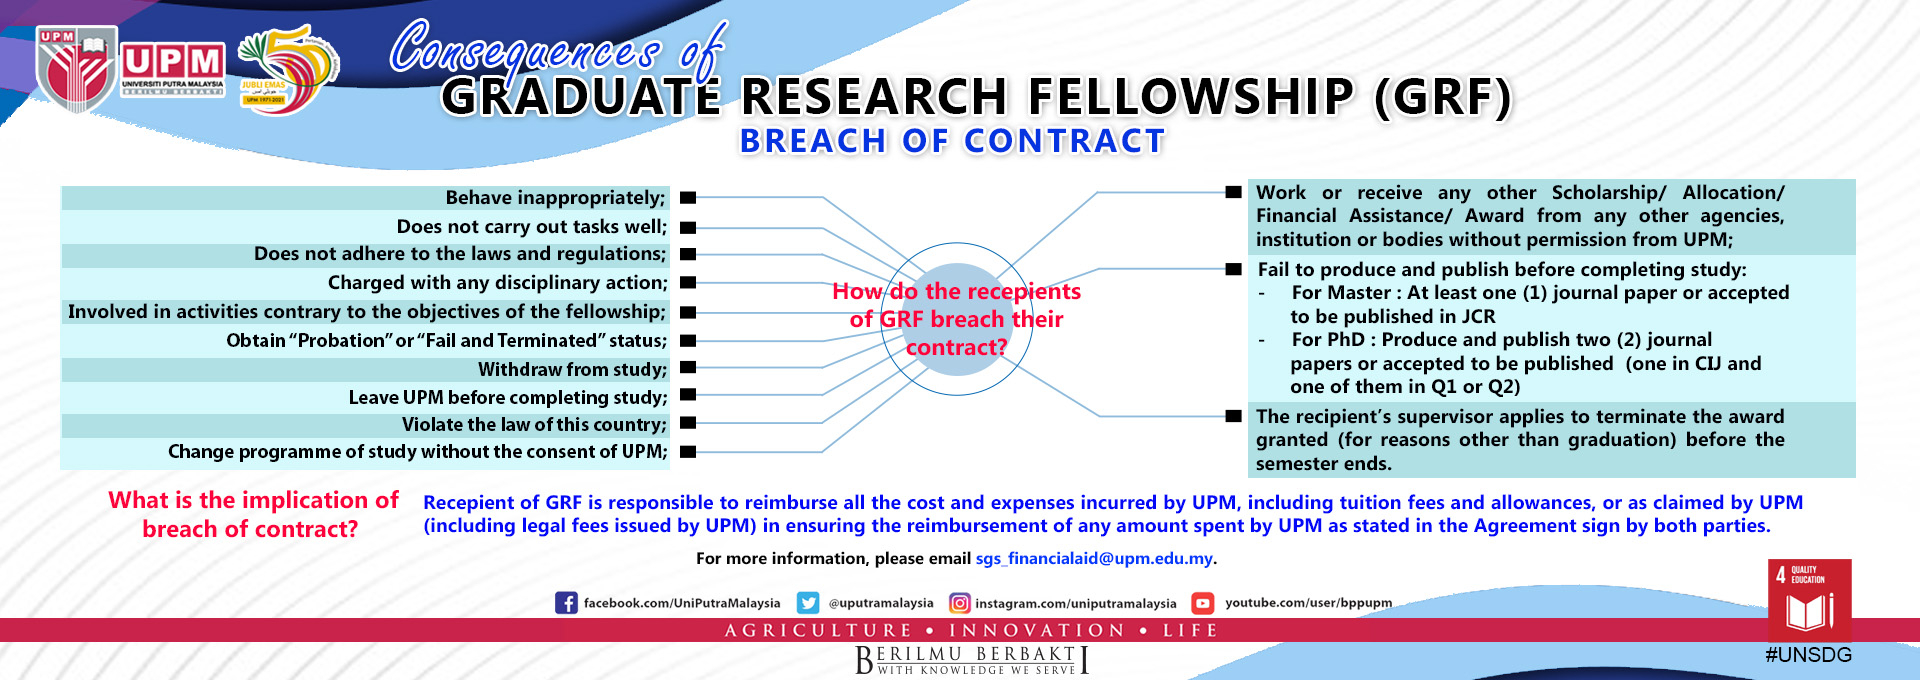 Breach of Contract GRF